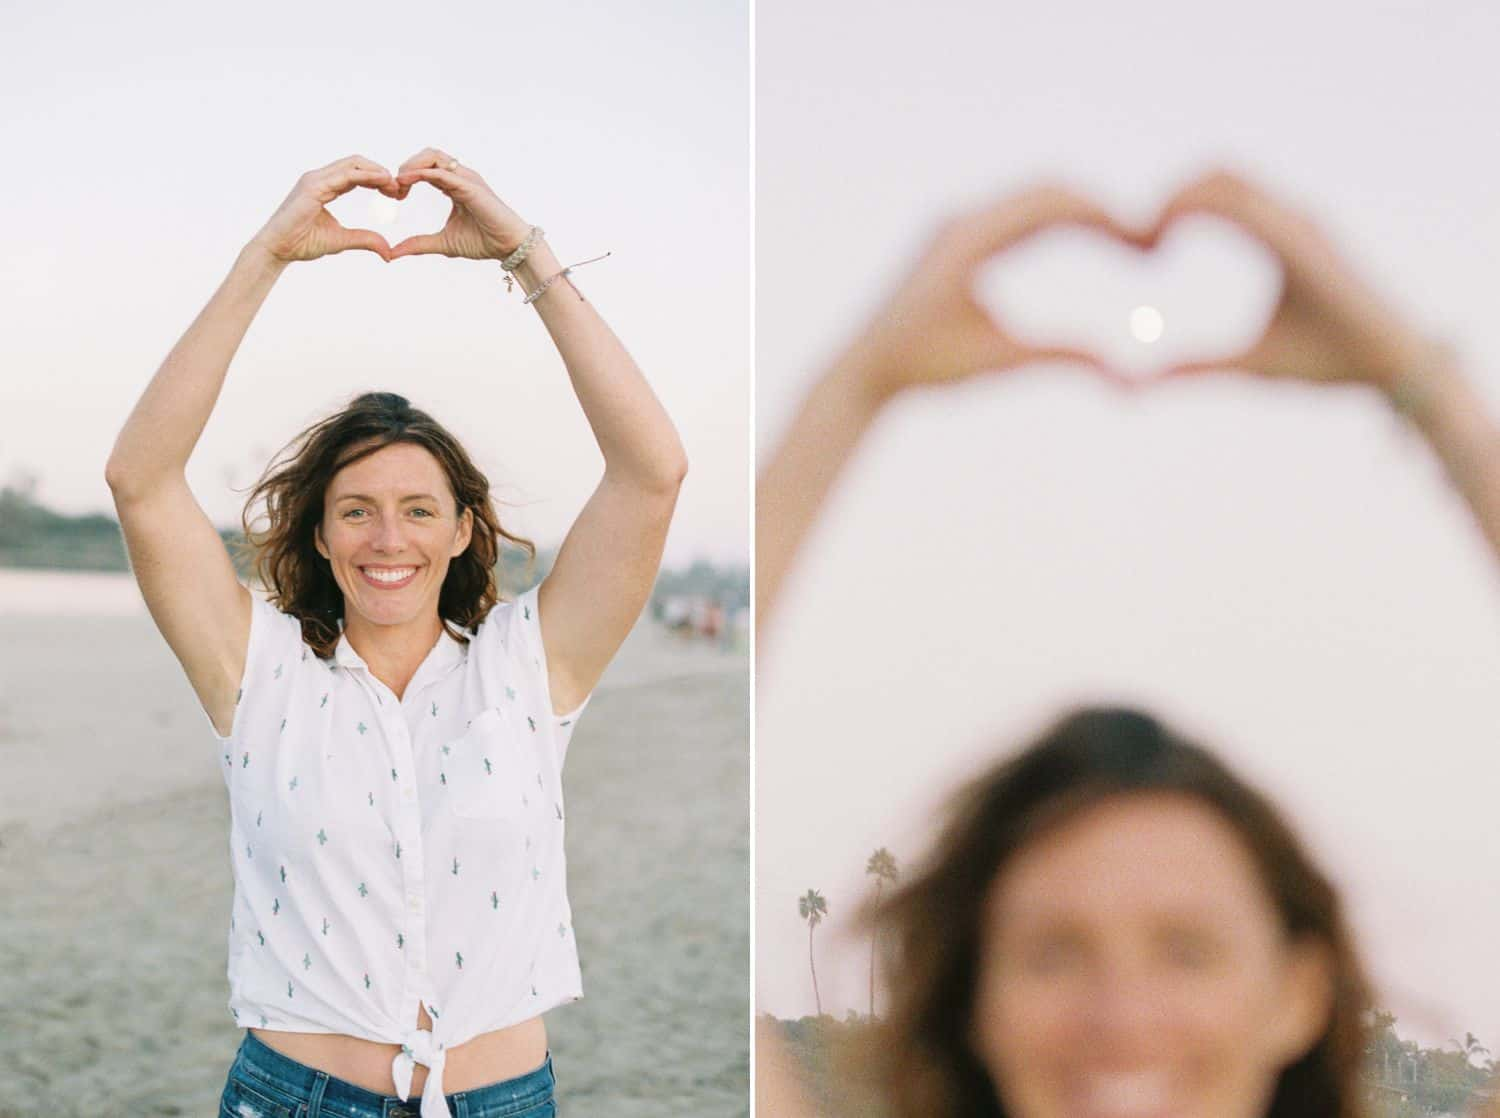 A woman on the beach makes a heart shape with her hands